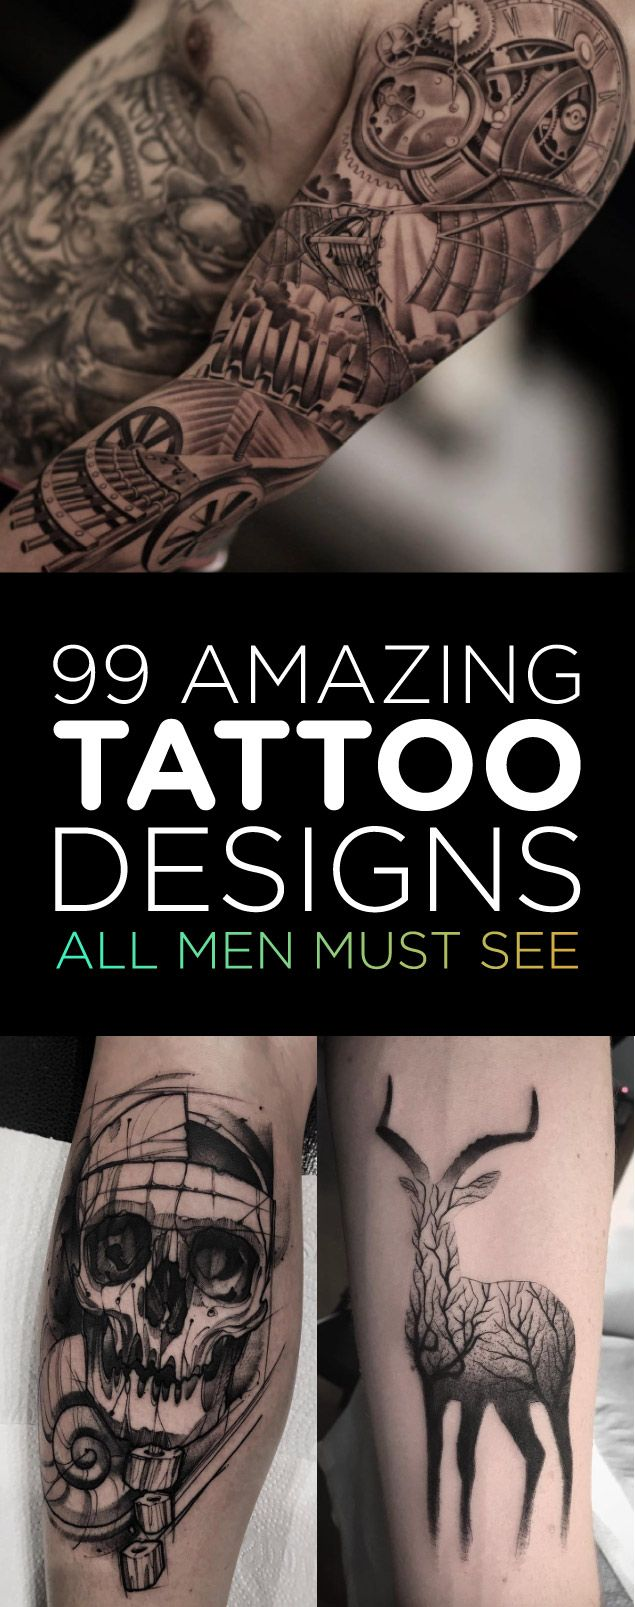 99 Amazing Tattoo Designs All Men Must See — Tattoos On Ideas And Designs